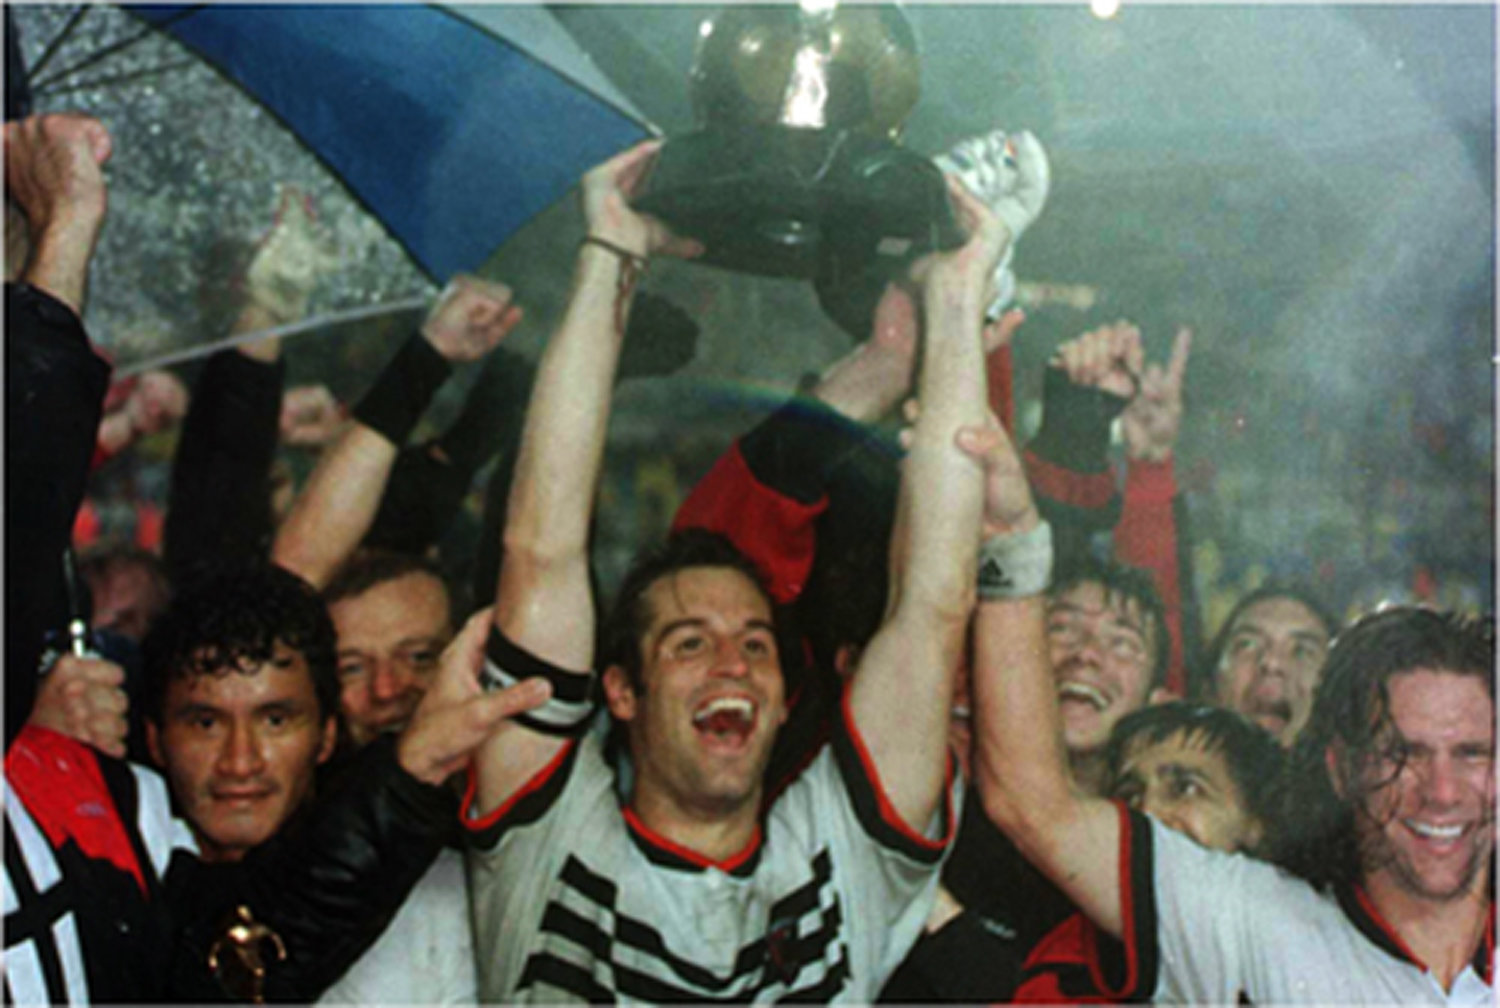 John Harkes of D.C. United hoisting the trophy after his team defeated the LA Galaxy 3-2 in the first ever championship match of Major League Soccer (1996).  Despite the initial euphoria, soccer enthusiasm in America quickly waned and MLS would come close to folding before surging in a remarkable comeback.